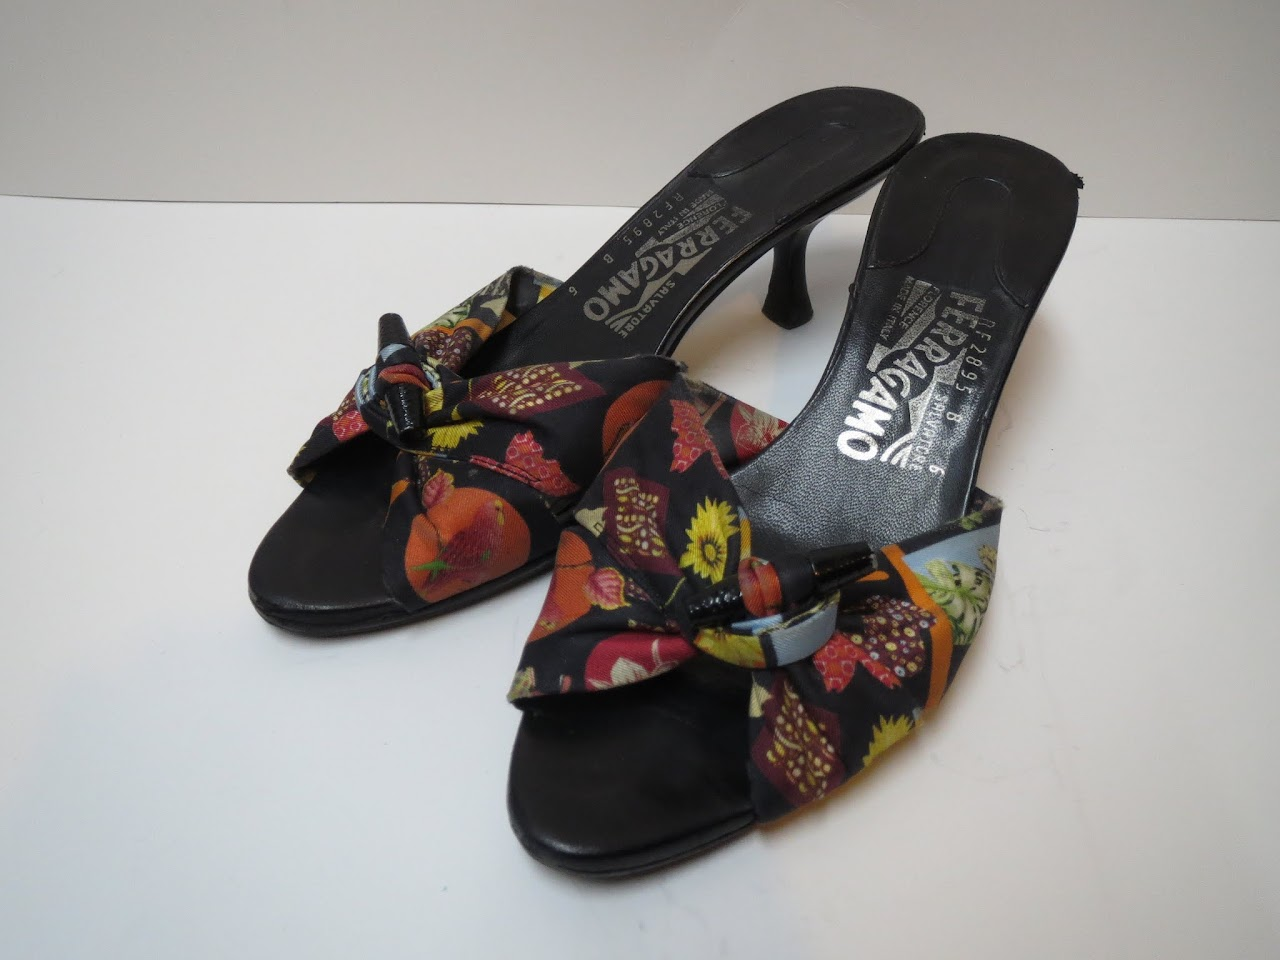 Salvatore Ferragamo Textile Sandals